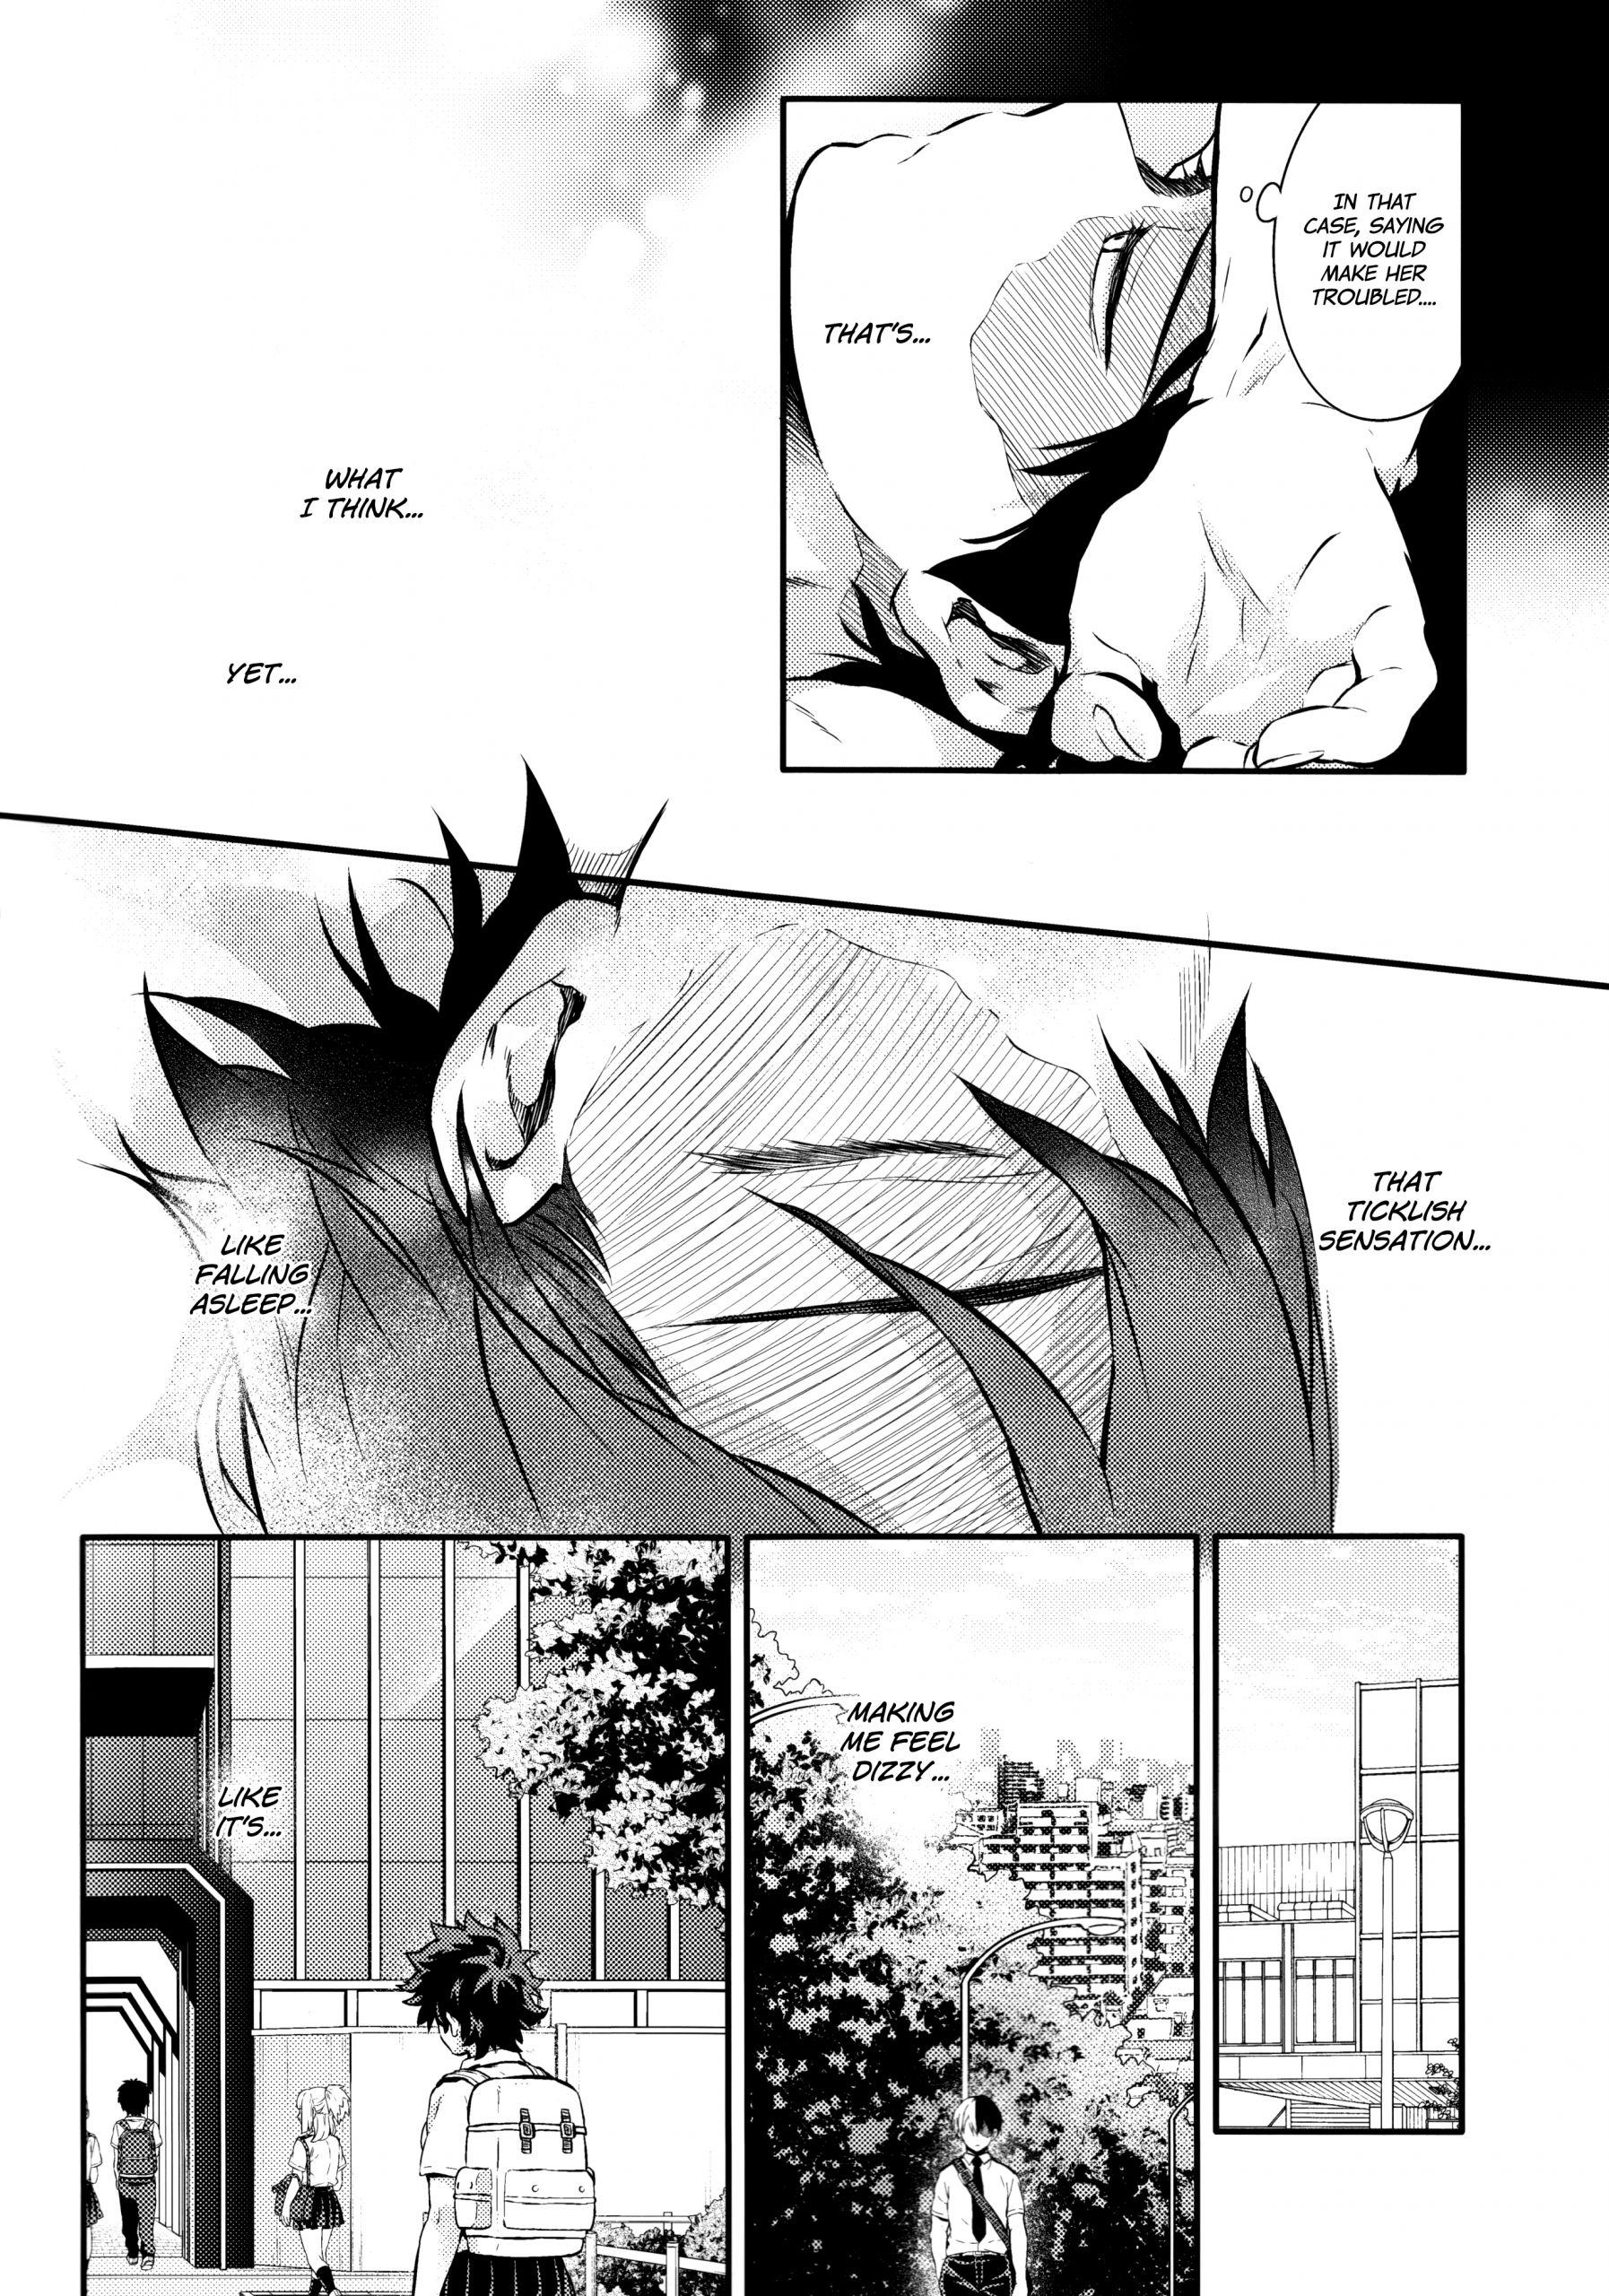 Love me tender another story hentai manga picture 48